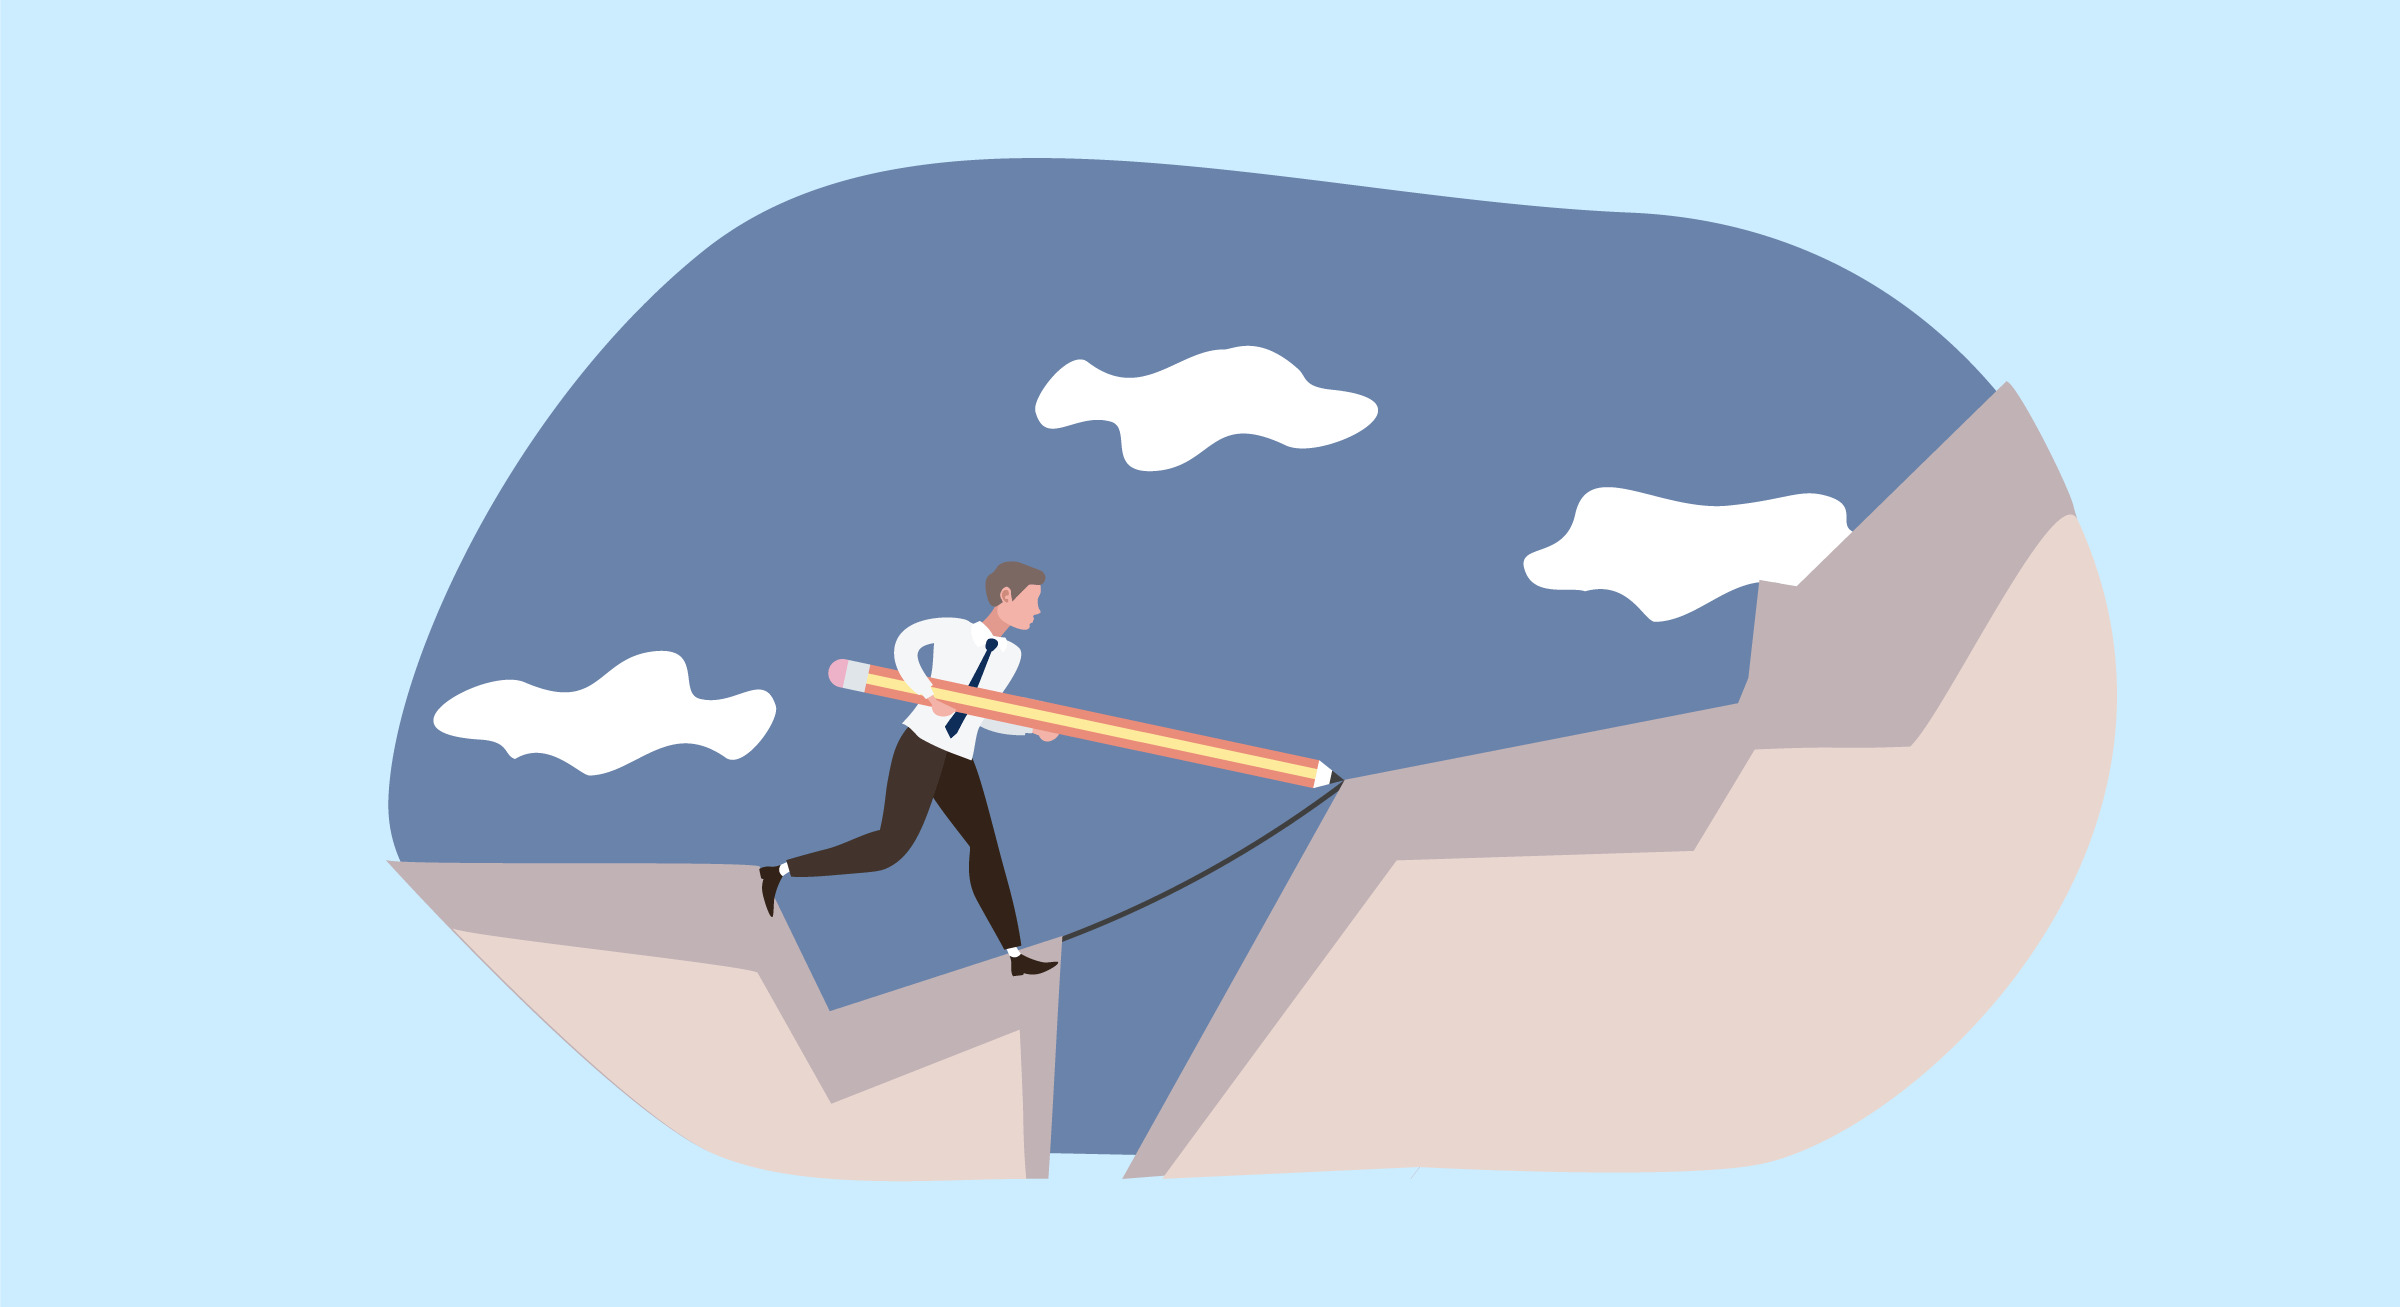 Illustration of a man forging his own path